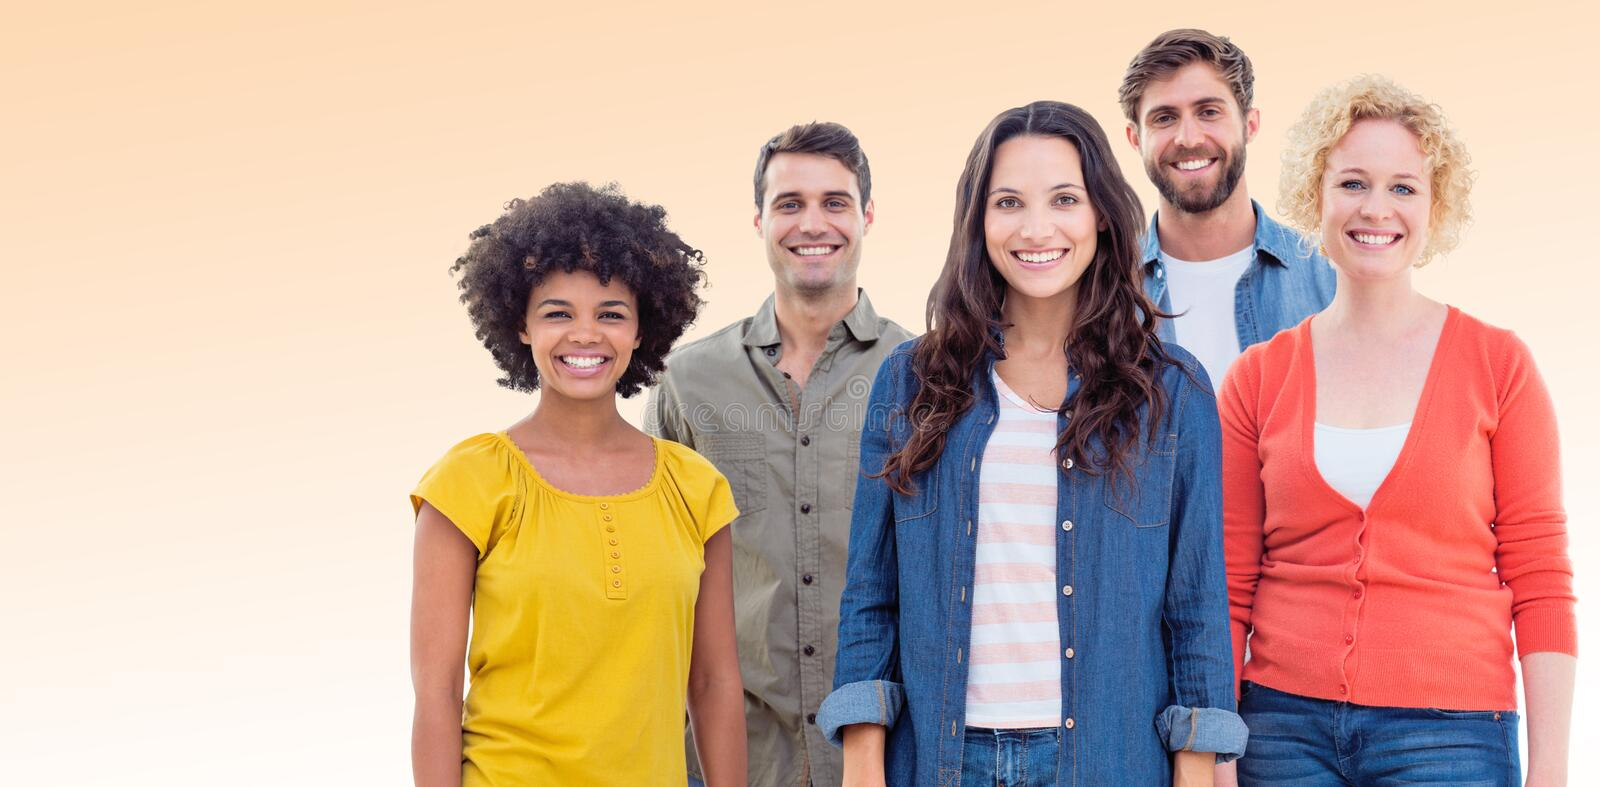 Composite image of group portrait of happy young colleagues. Group portrait of happy young colleagues against orange background royalty free stock photos